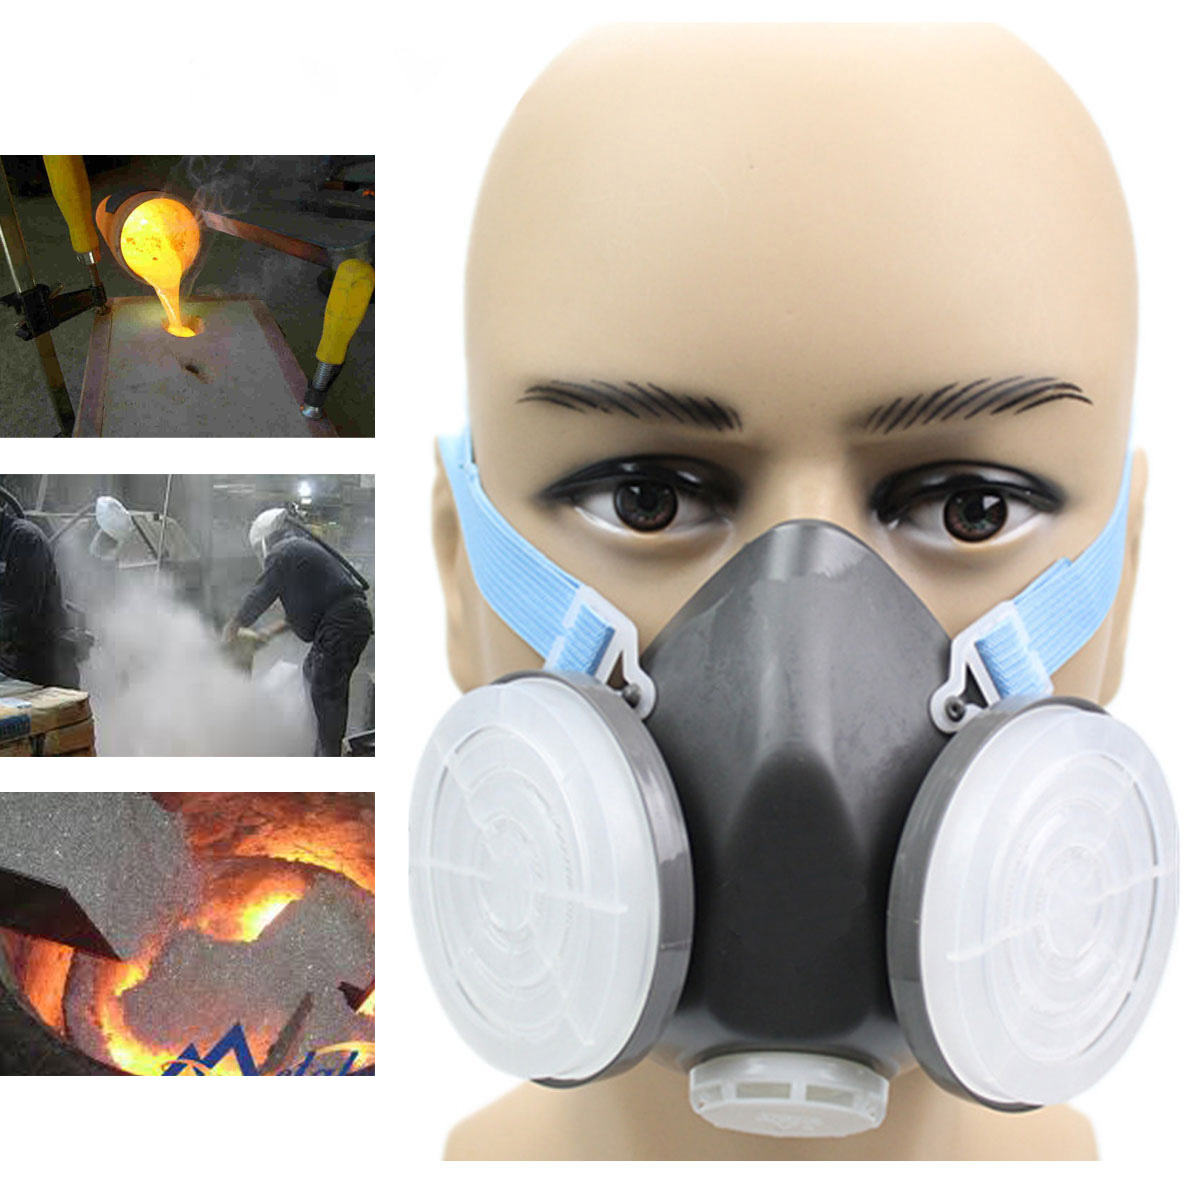 Anti Dust Mask Respirator Breathable Face Mask Spraying Decorate for Filter Polishing Industrial Paint Workplace Safety anti dust respirator safety face mask white 10 pcs